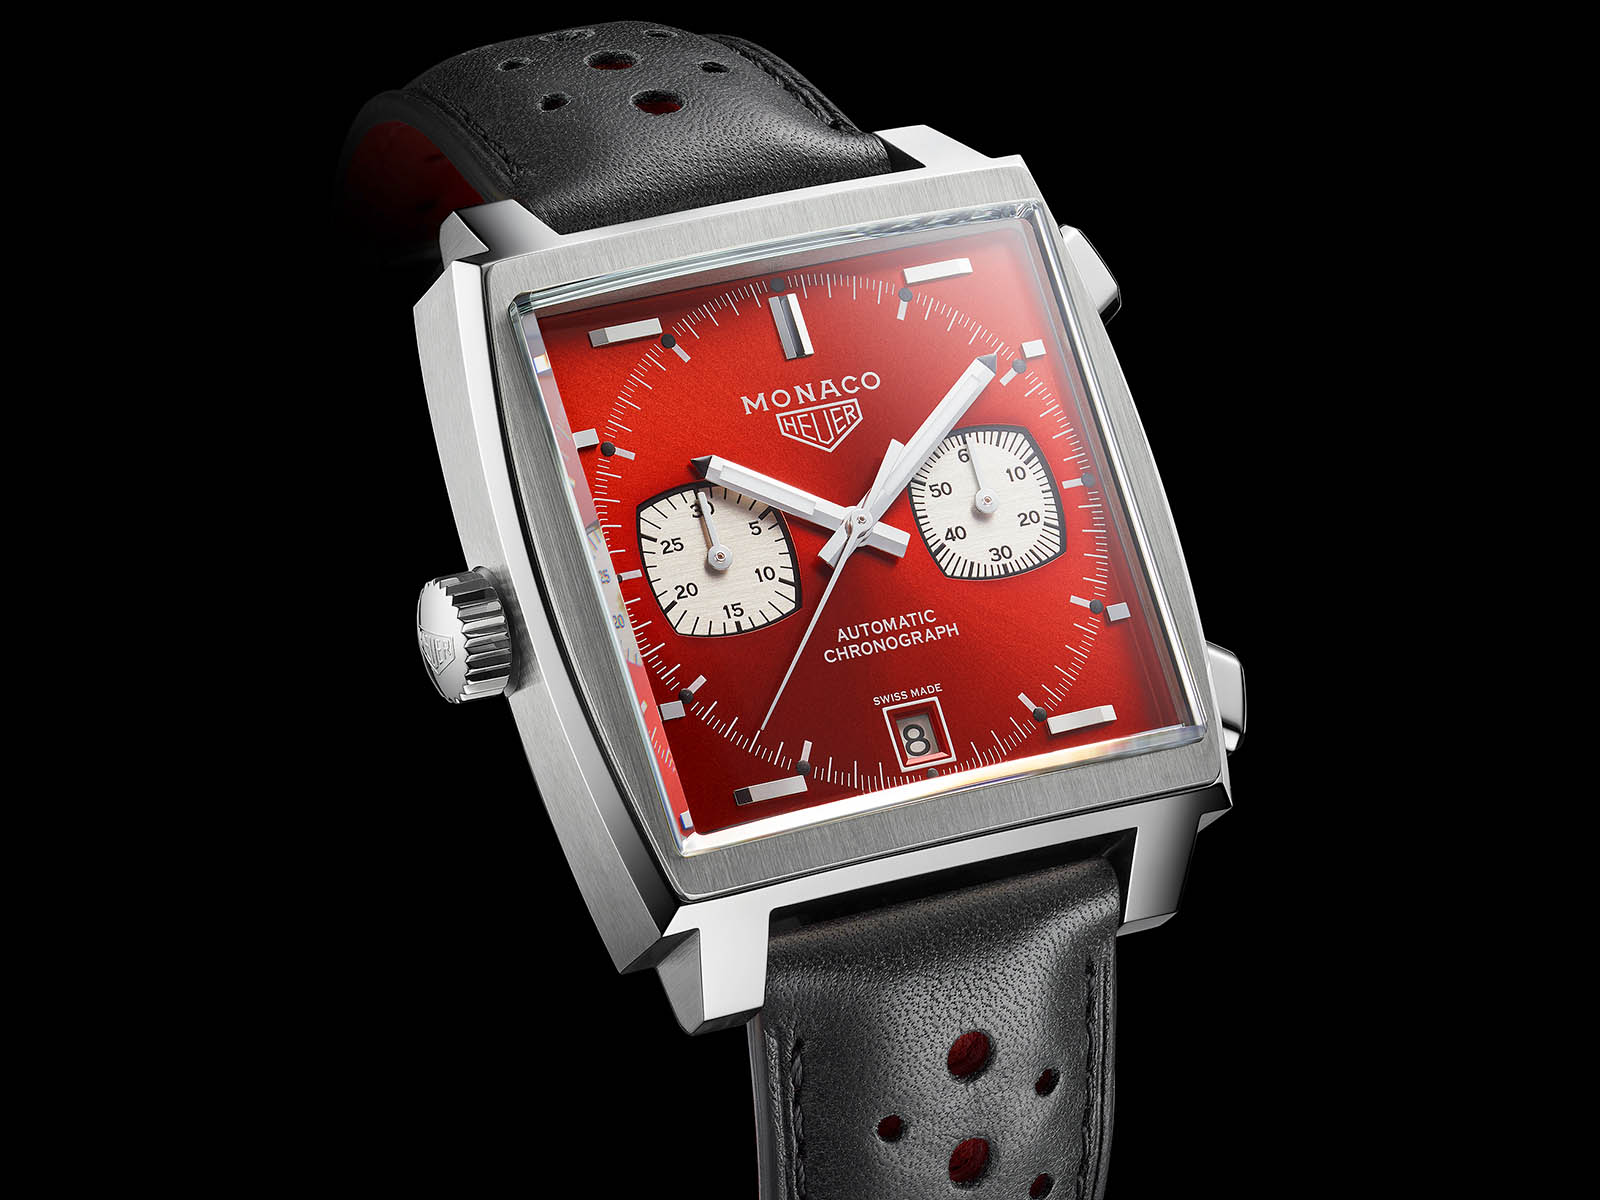 caw211w-fc6467-tag-heuer-1979-1989-limited-edition-5.jpg